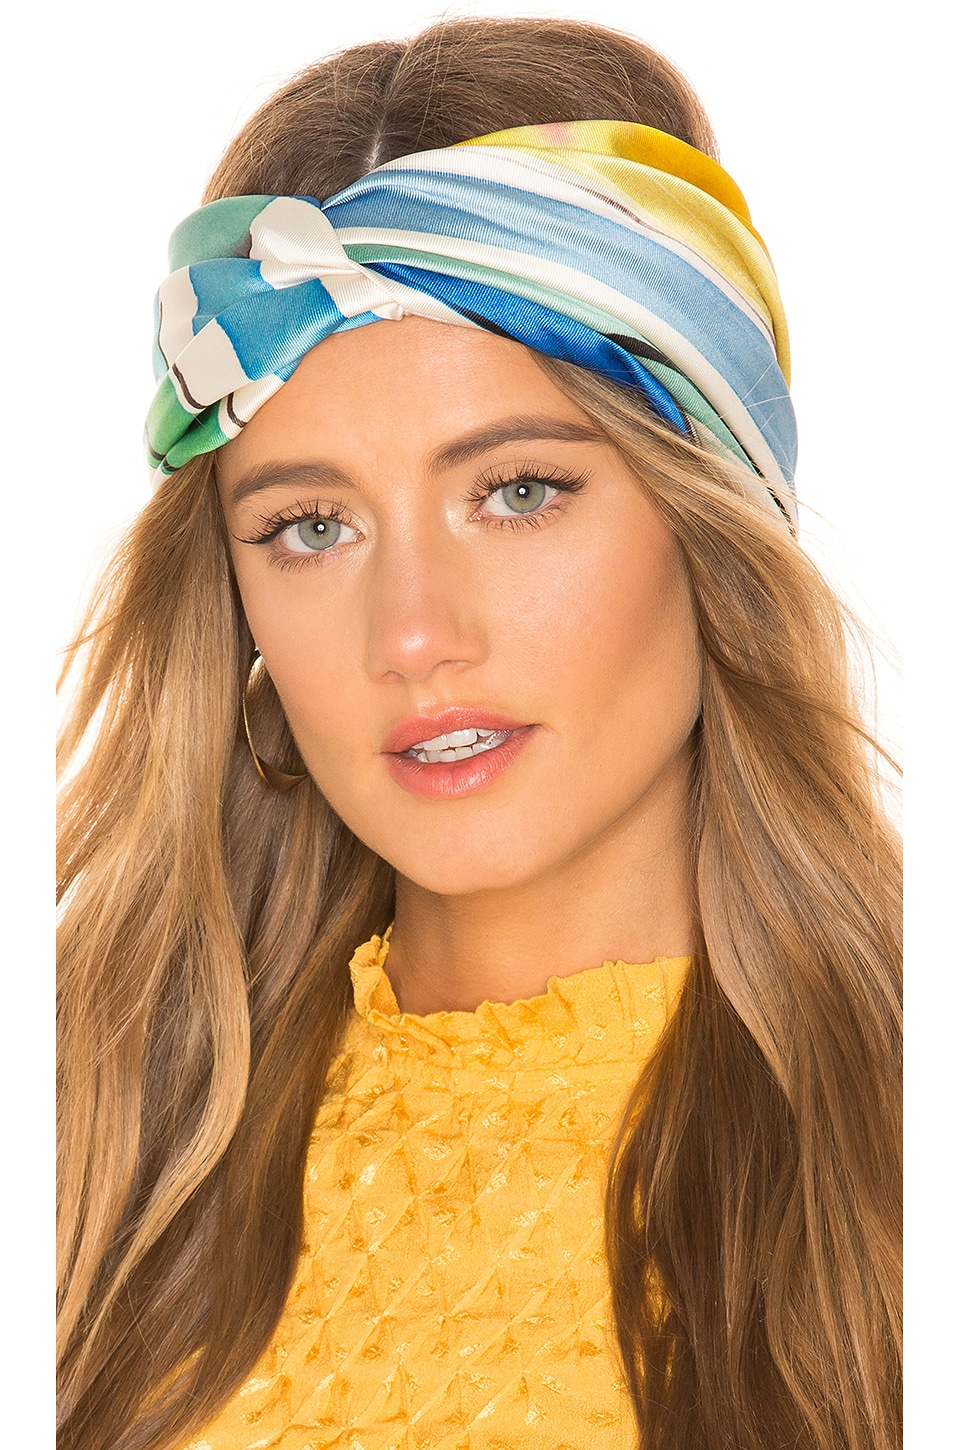 Eugenia Kim Malia Headband in Green & Blue